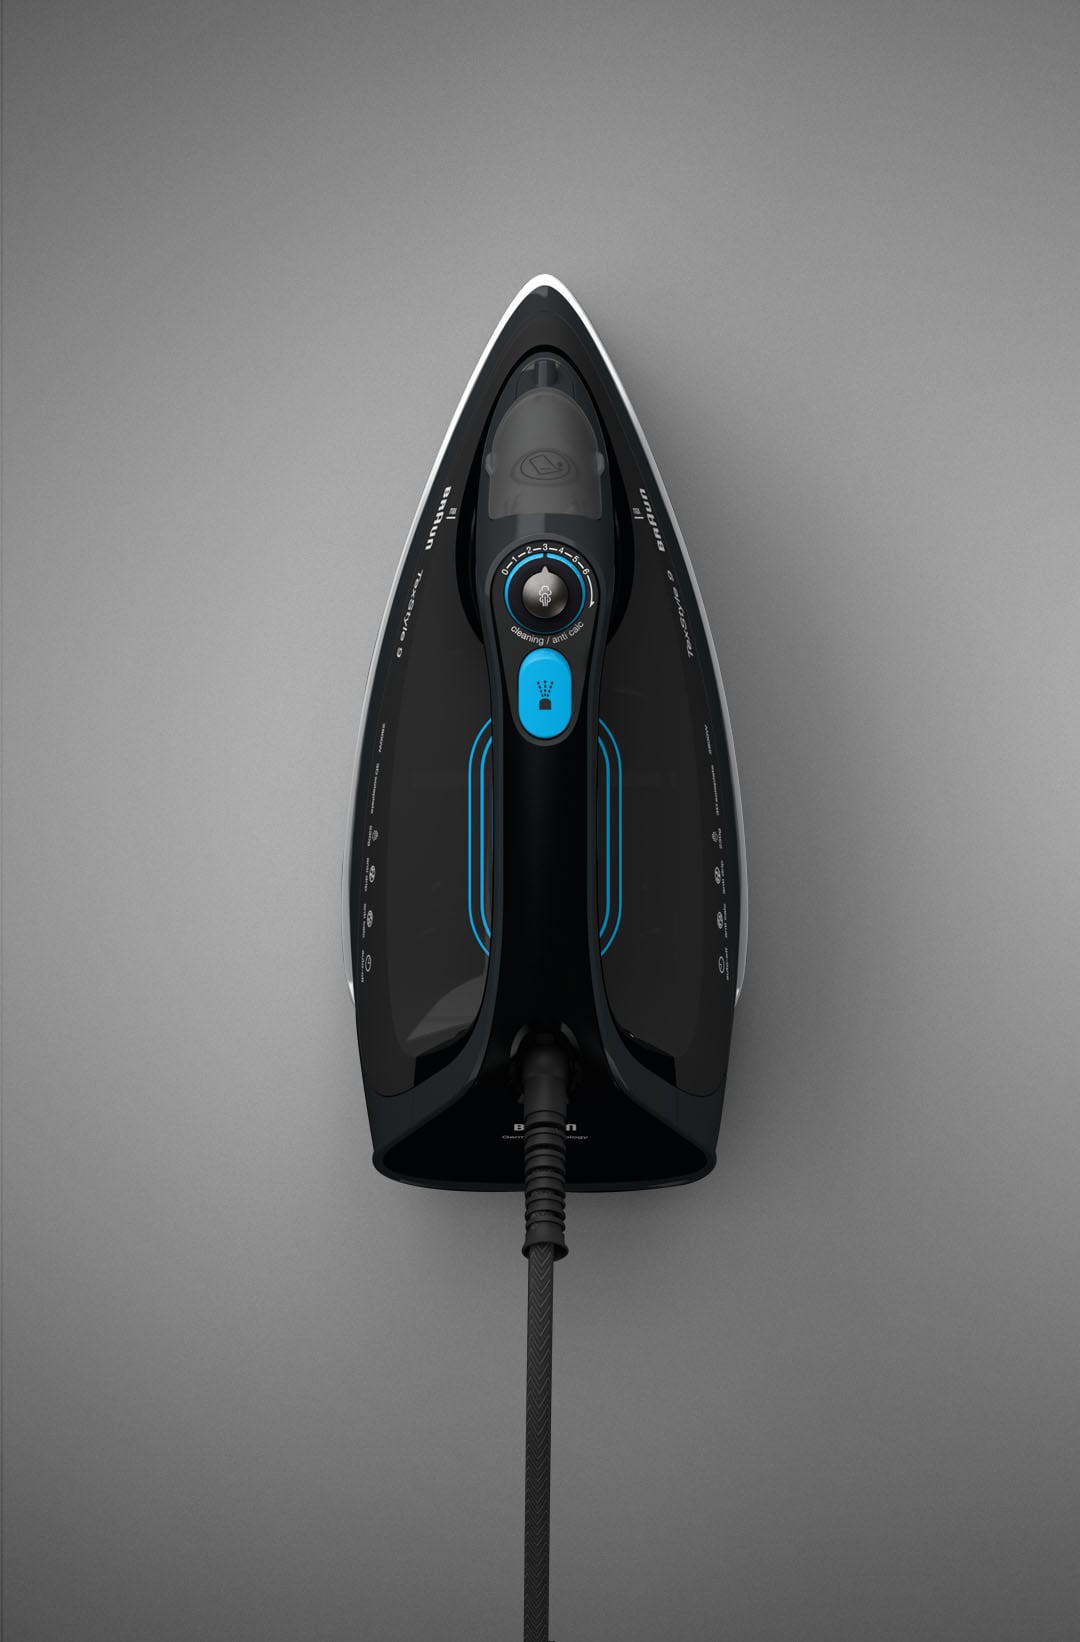 Braun TexStyle 9 Steam iron